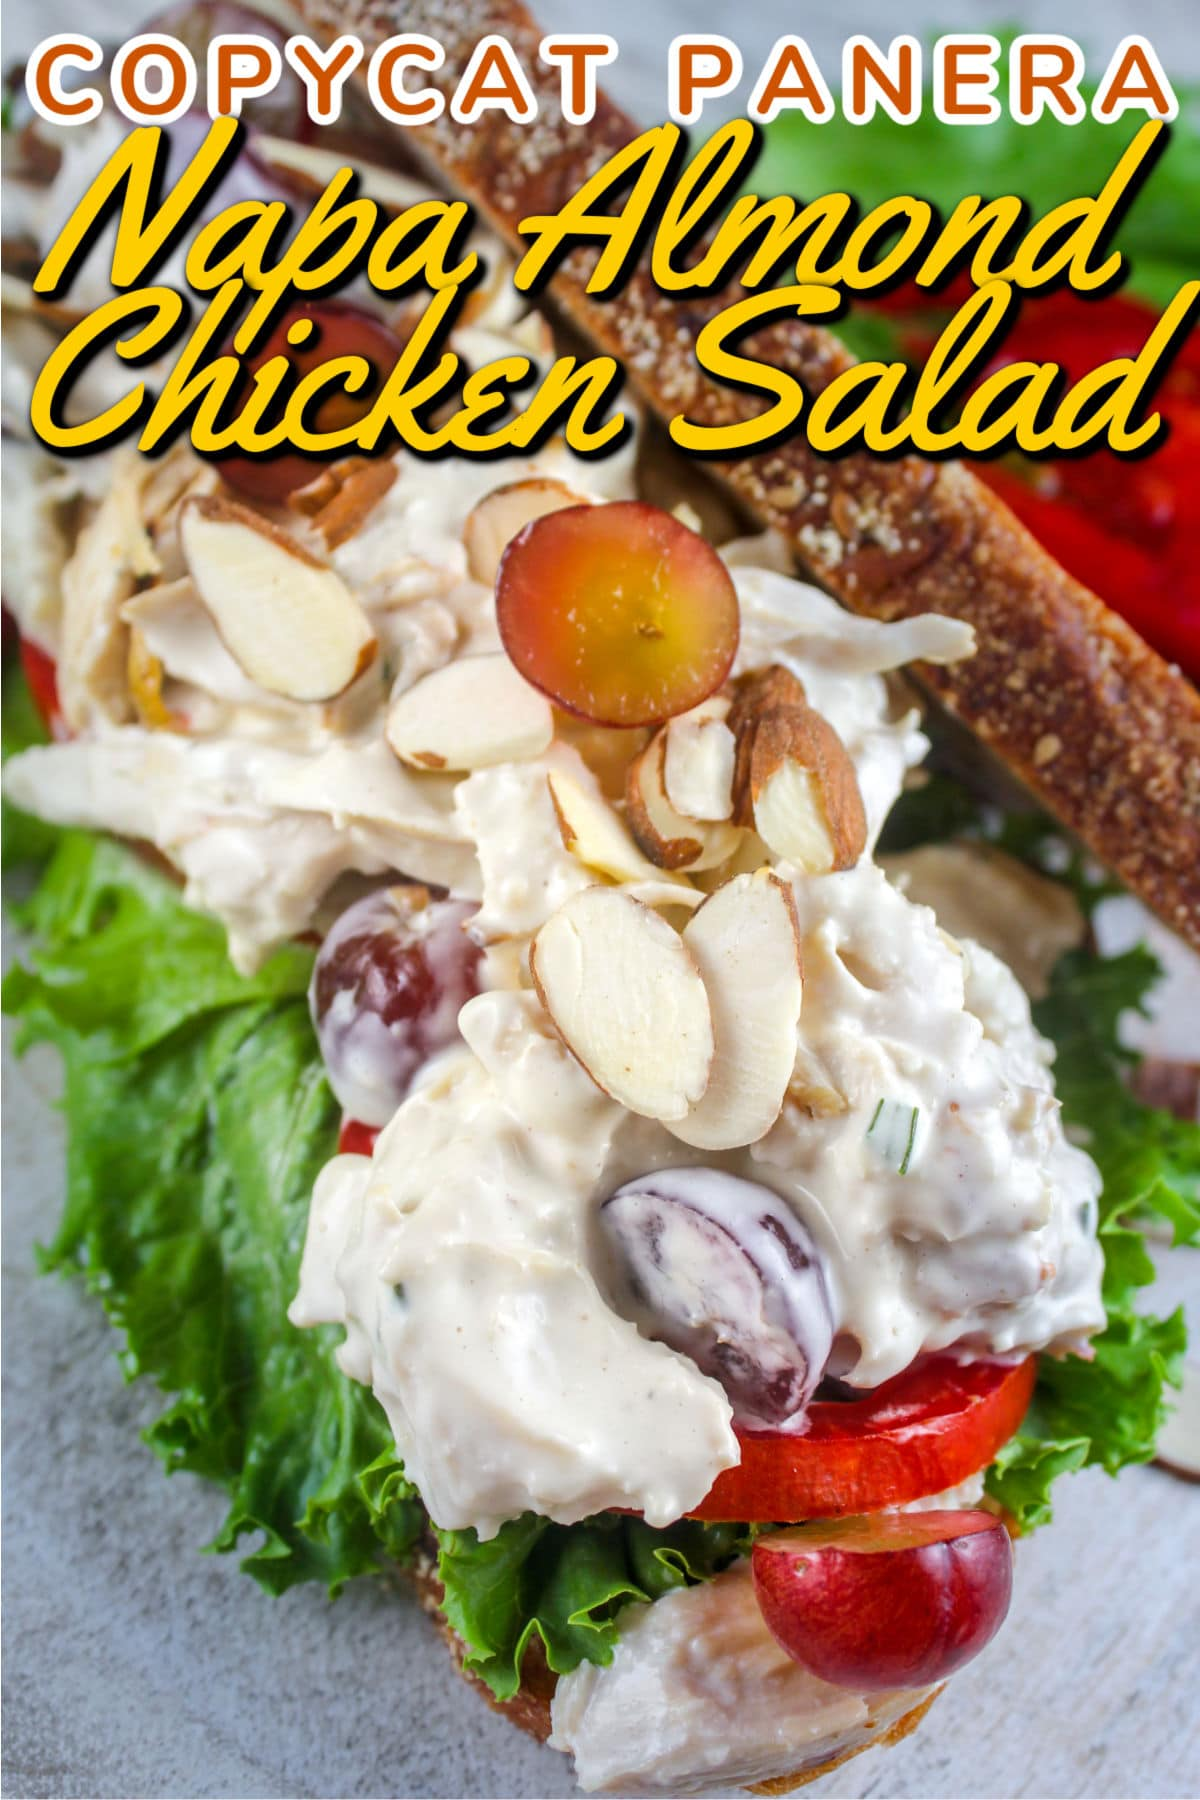 I was shocked at how much I loved Panera's Napa Almond Chicken Salad! I always thought I was a chicken salad traditionalist - but this chicken salad is delicious! I made it for myself and think it's spot-on!  via @foodhussy